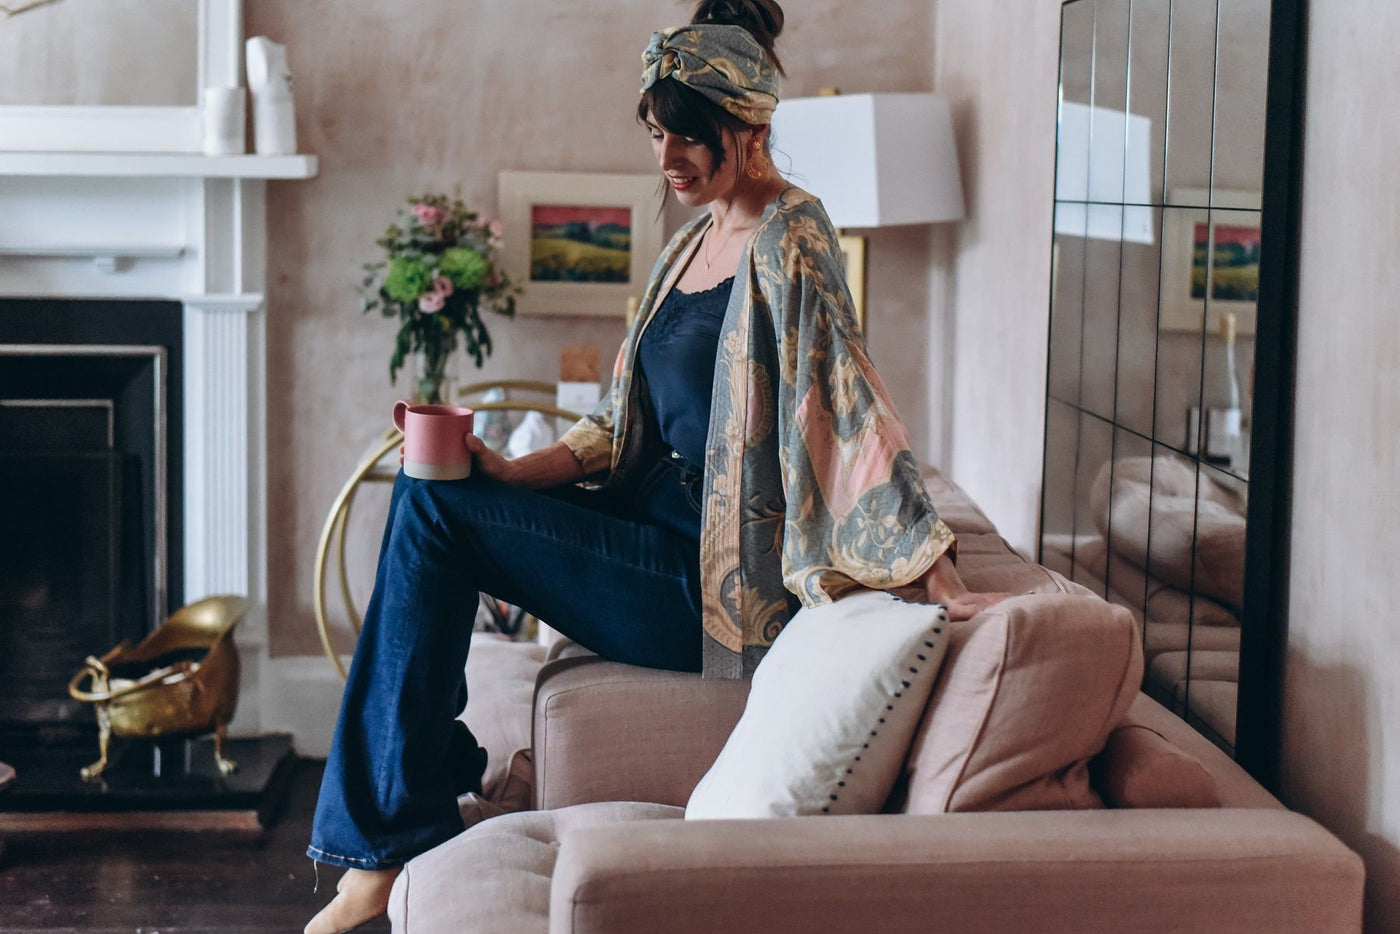 Fashionable woman in boho clothing sat on the sofa with a cup of tea